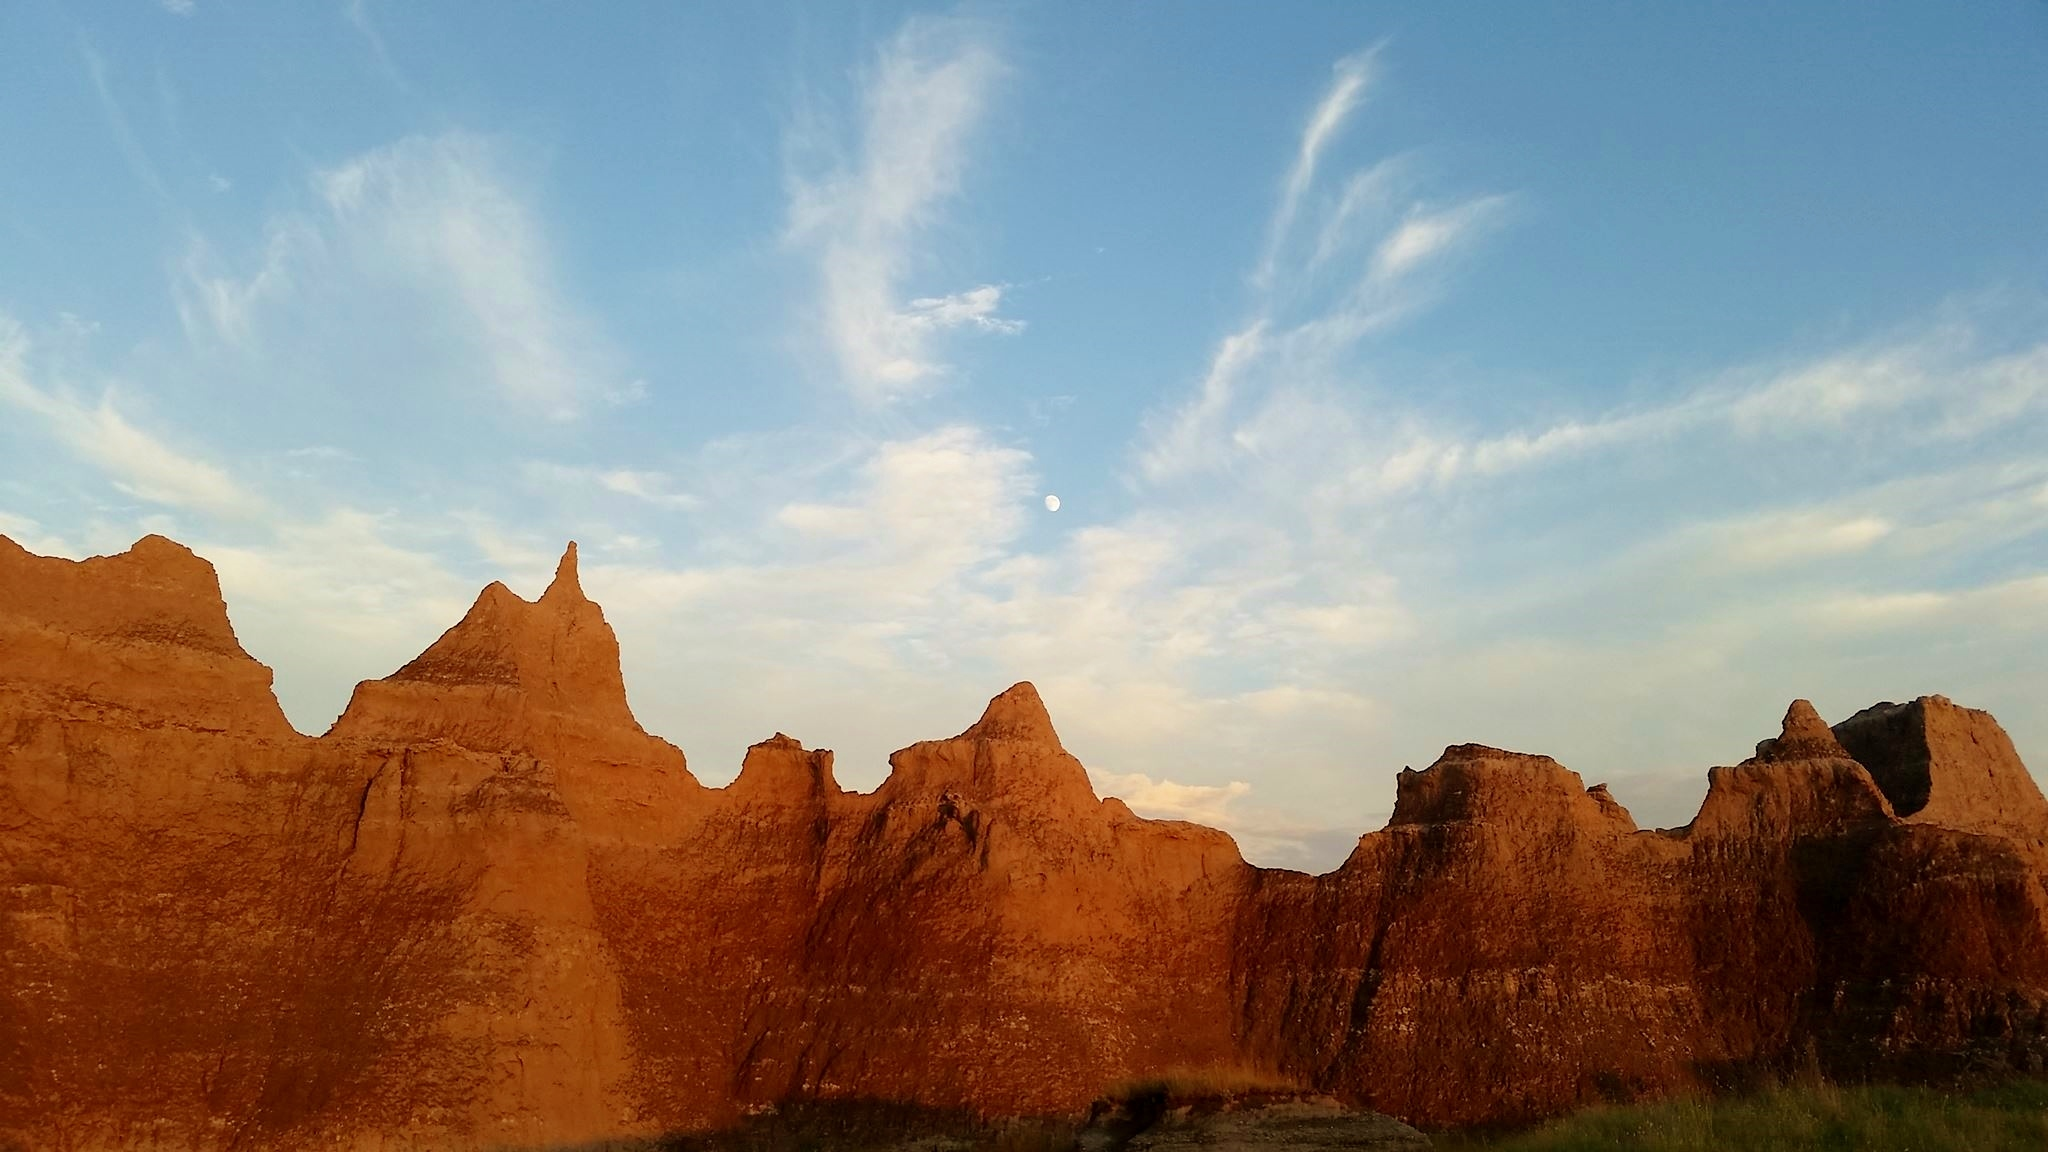 Sunset and moonrise in the Badlands